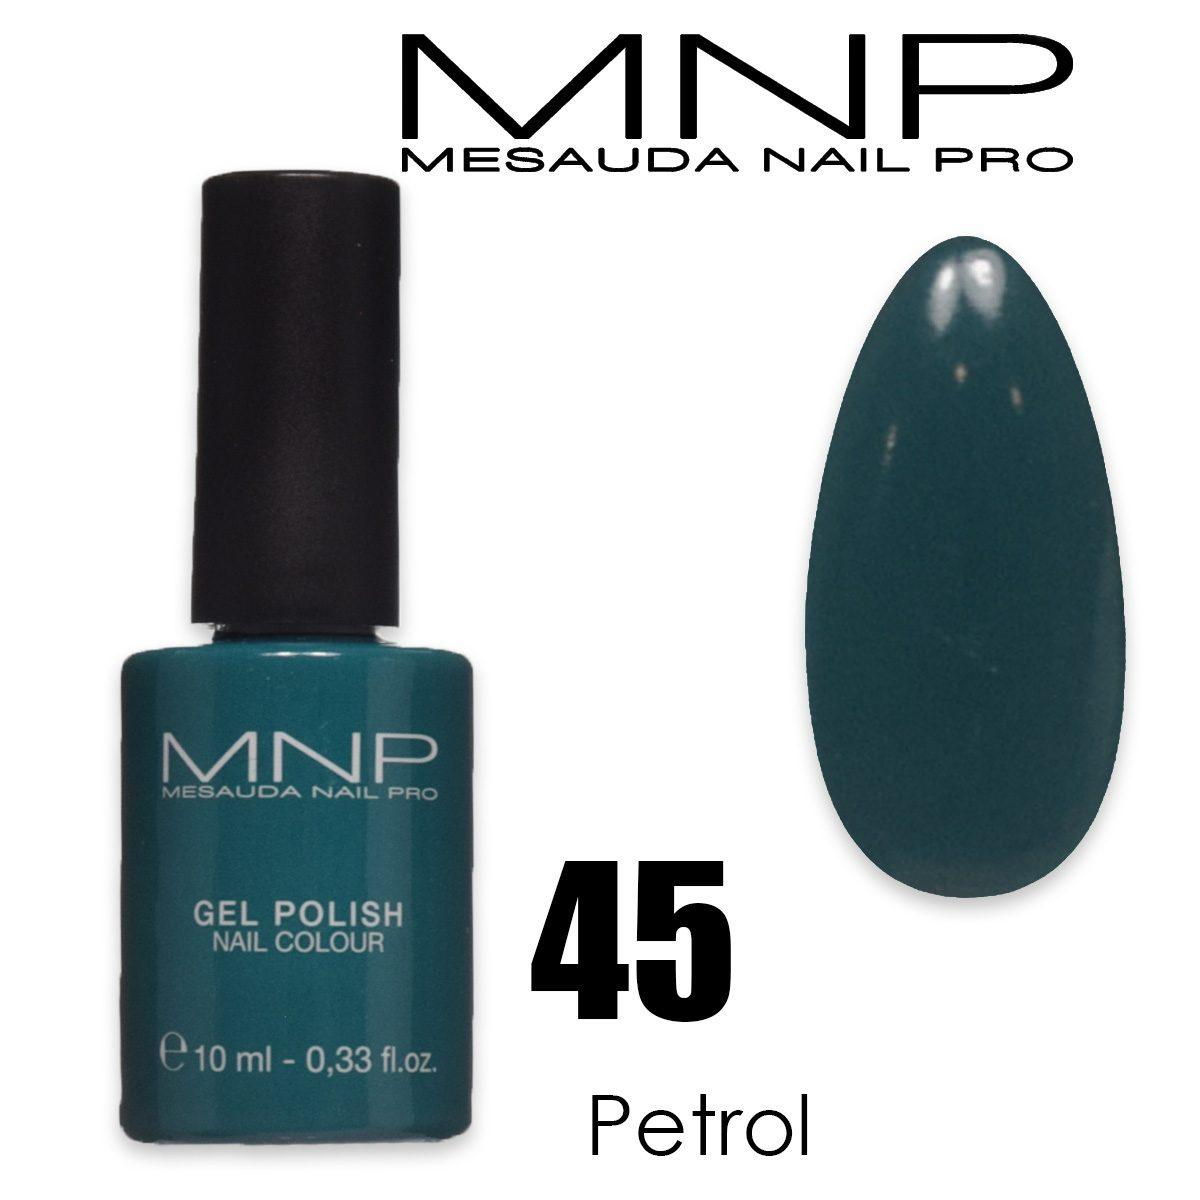 Mesauda 10 ml gel polish 045 petrol